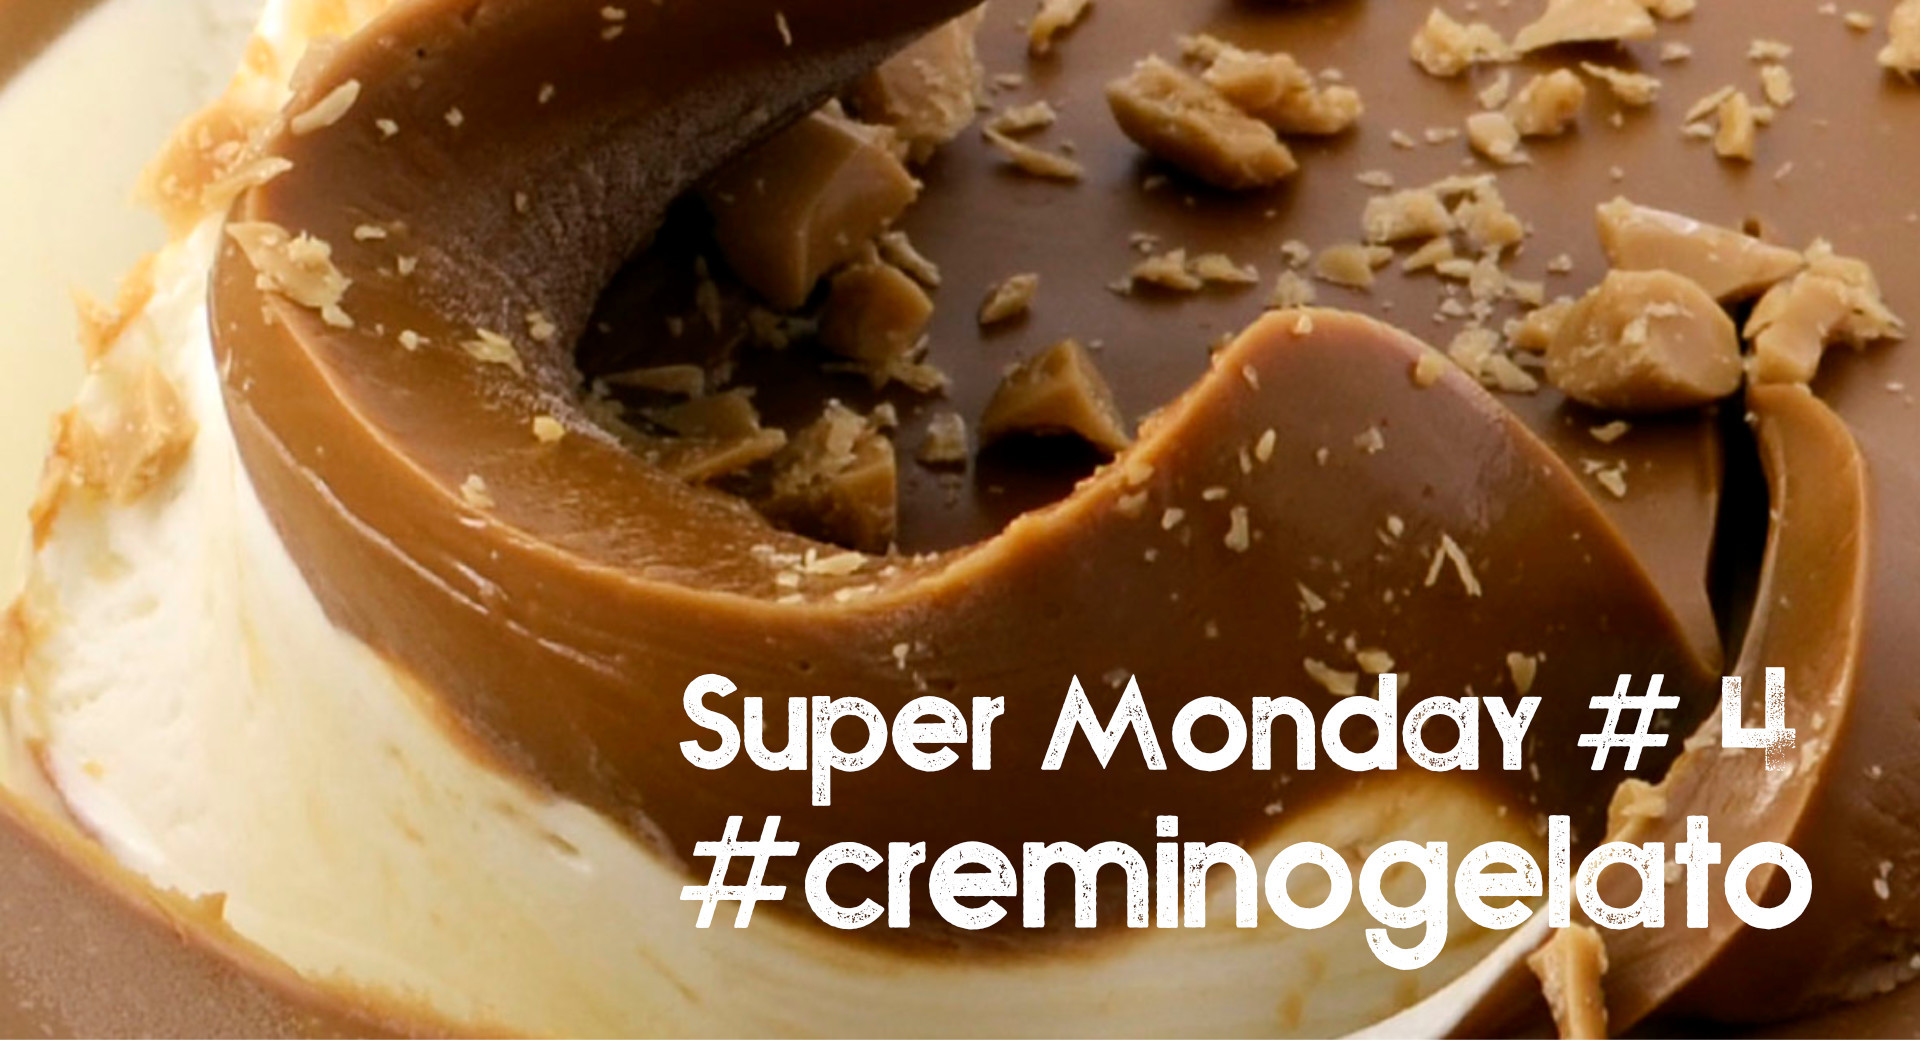 Gelq.it - Super Monday #4 - CREMINO GELATO